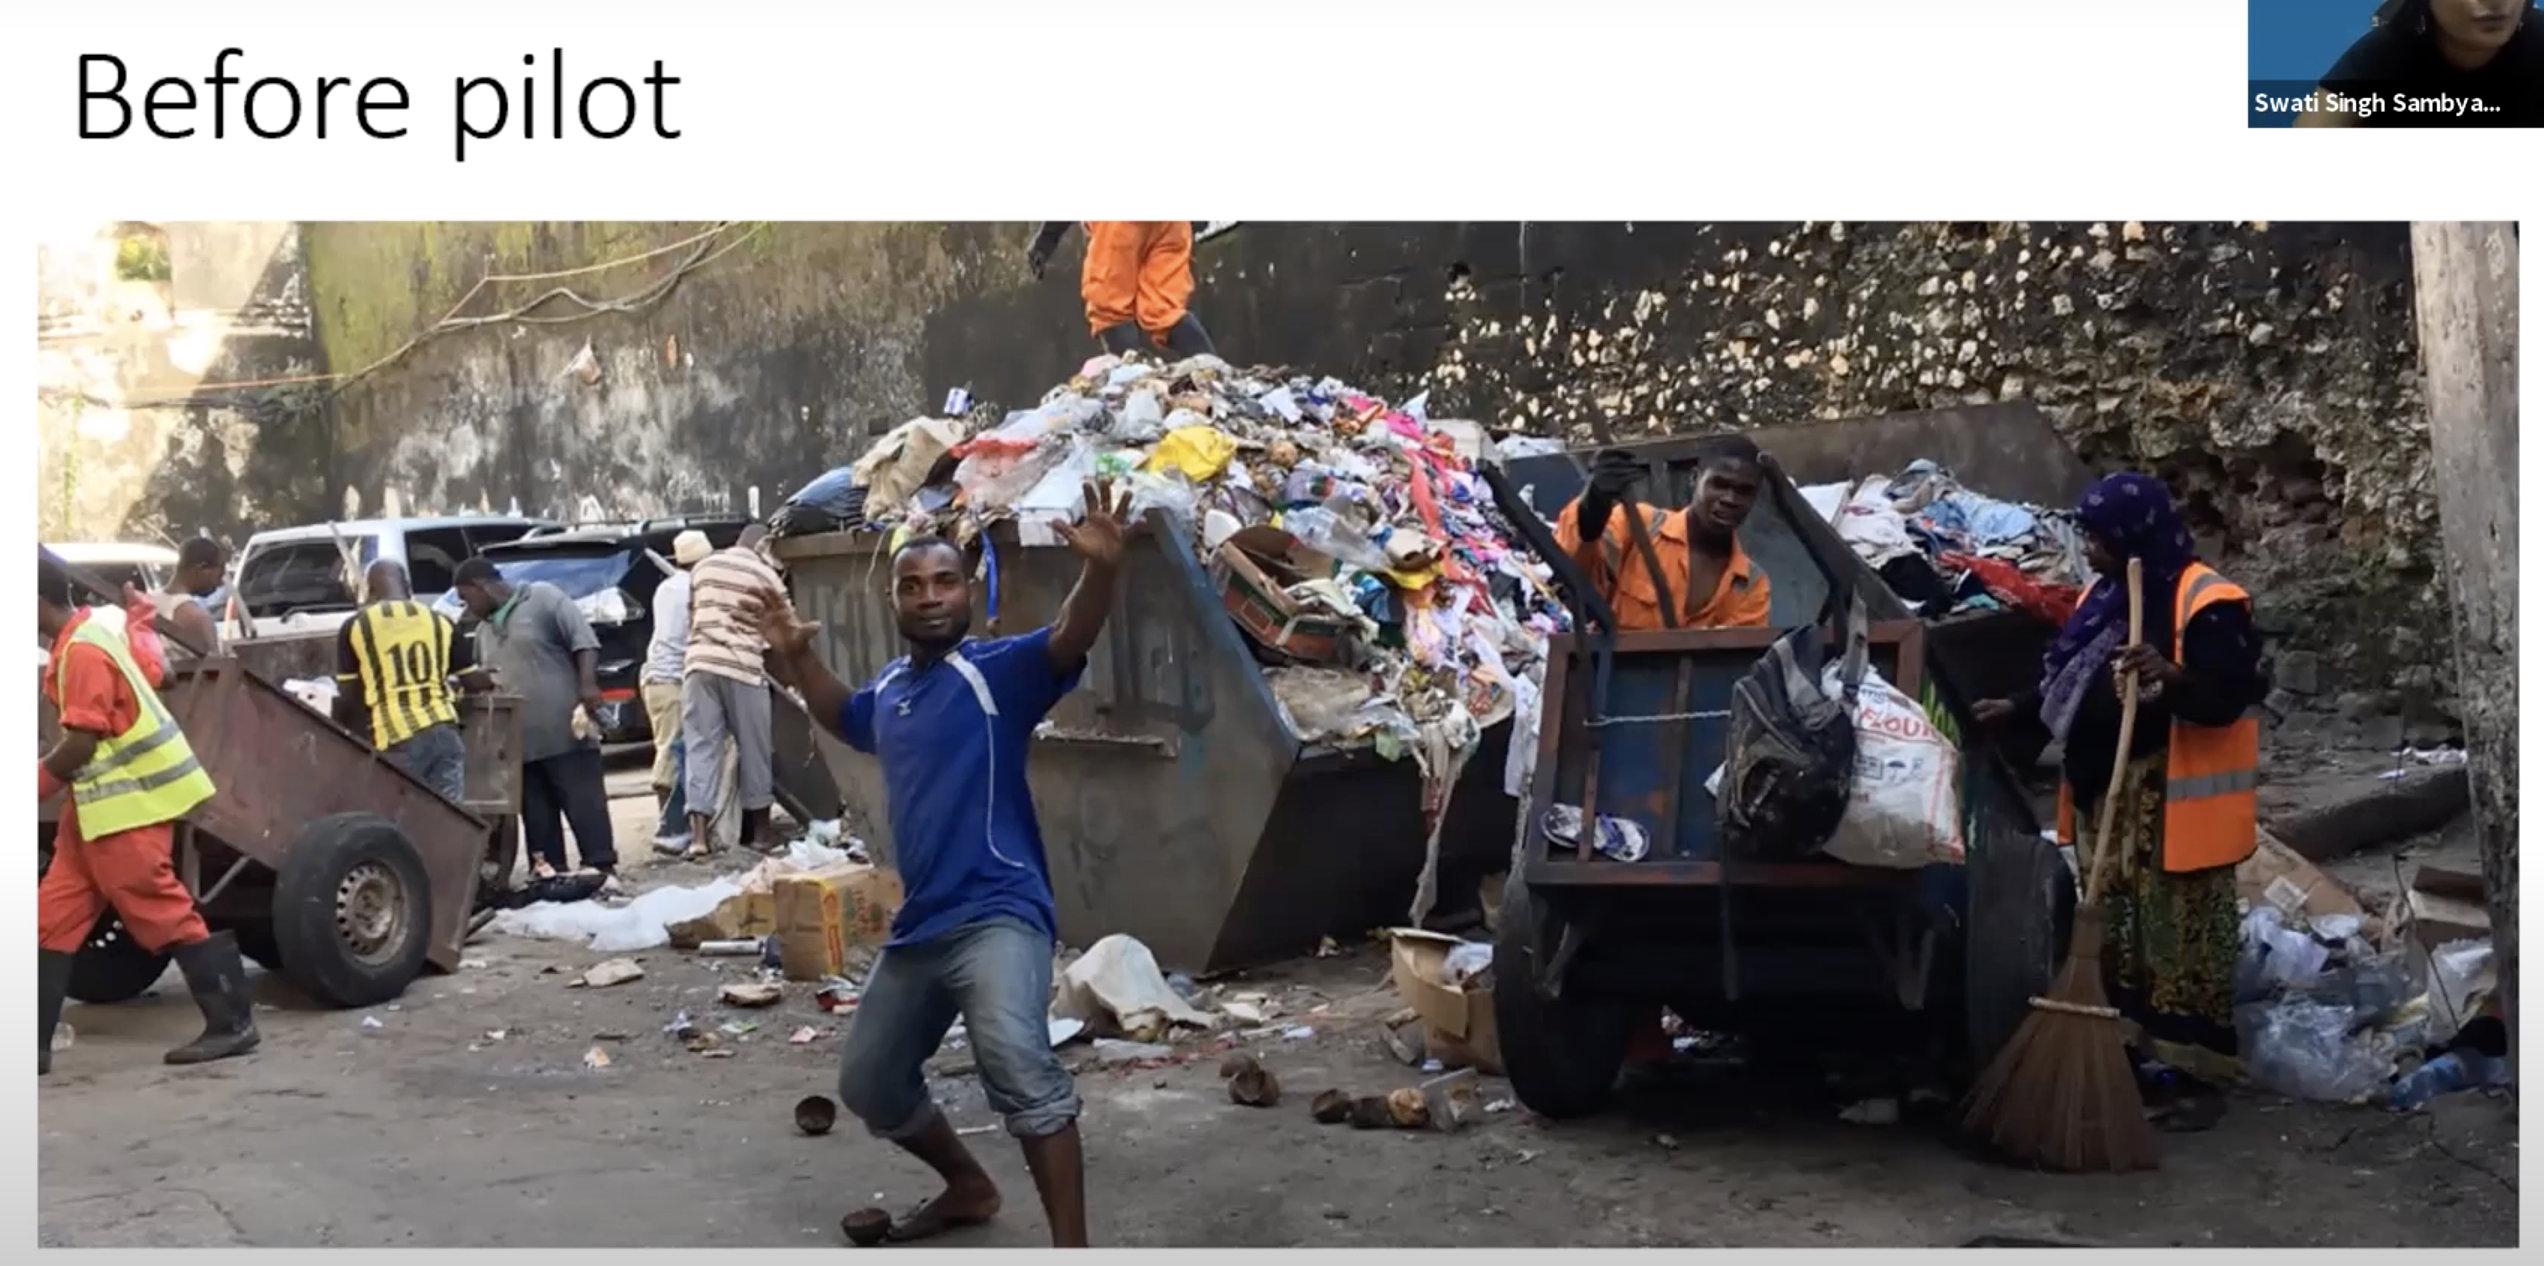 The Waste Crisis – Missing Billions (Part I: Waste as a System)